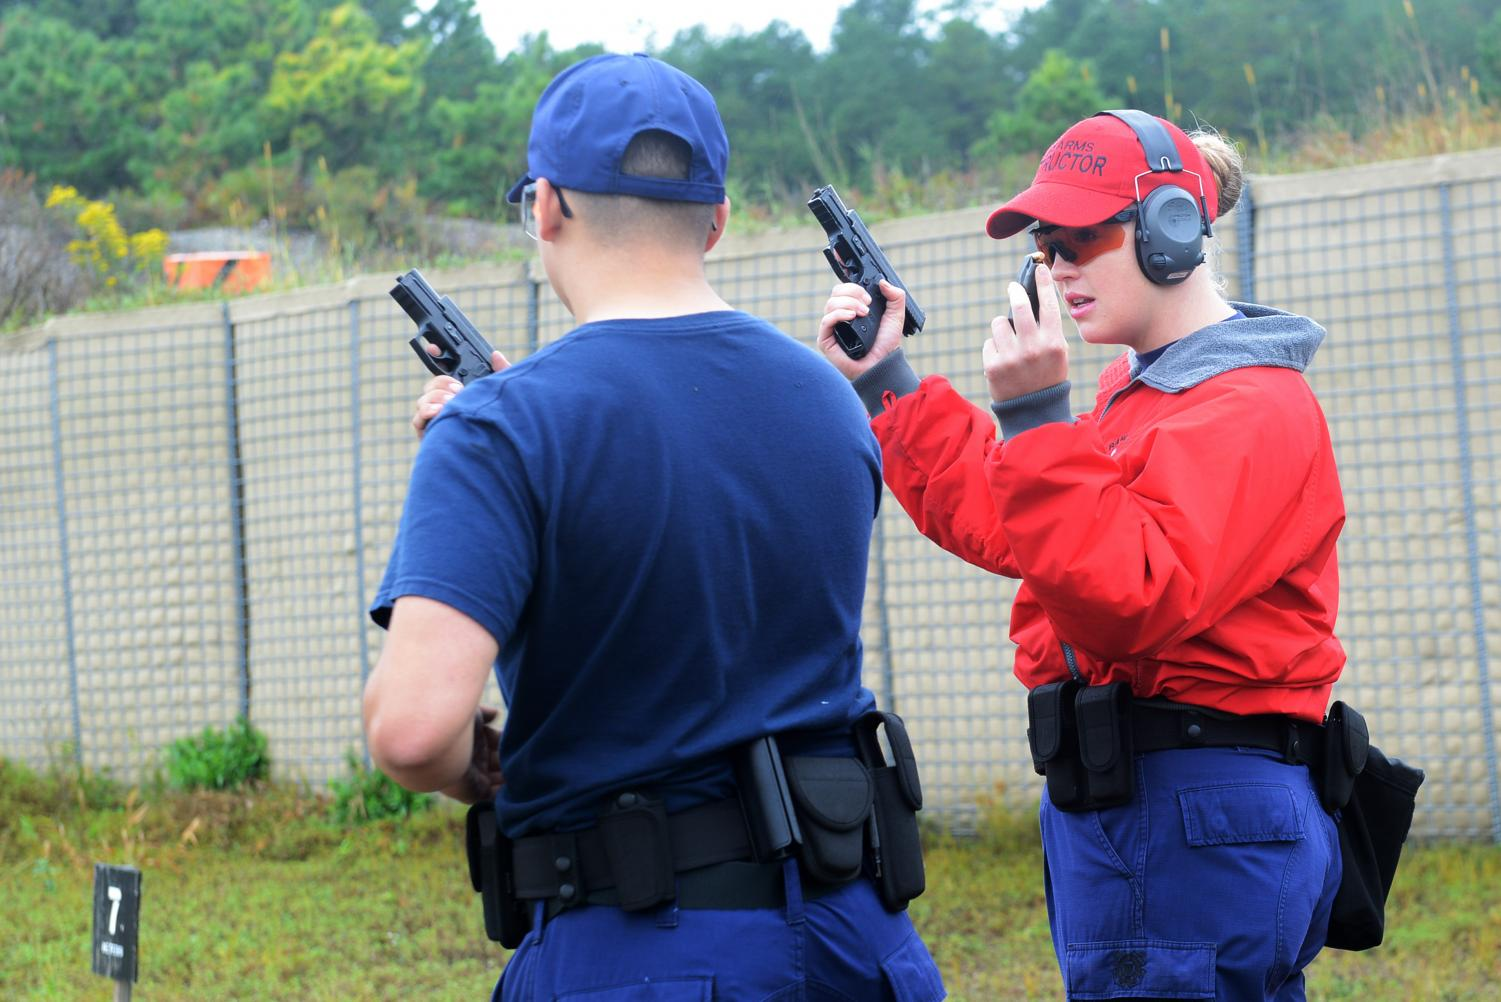 Courtesy of Coast Guard Compass.  Many schools now hire instructors for teachers, so they can handle guns safely during an emergency situation.